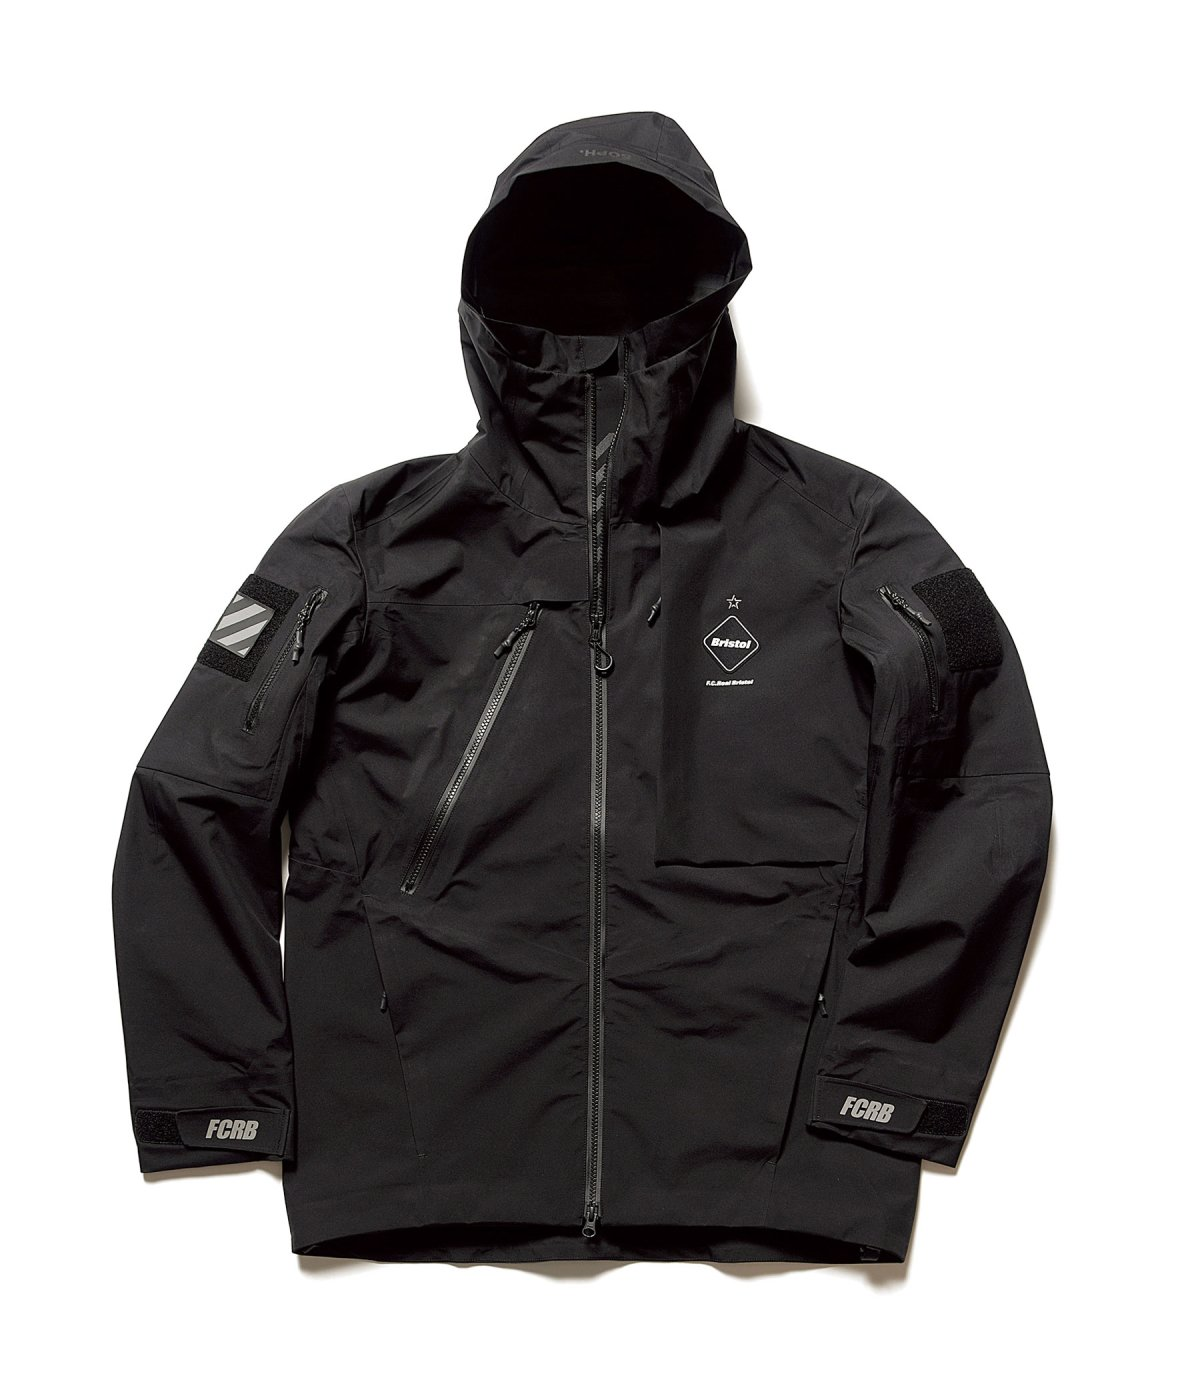 WARM UP JACKET